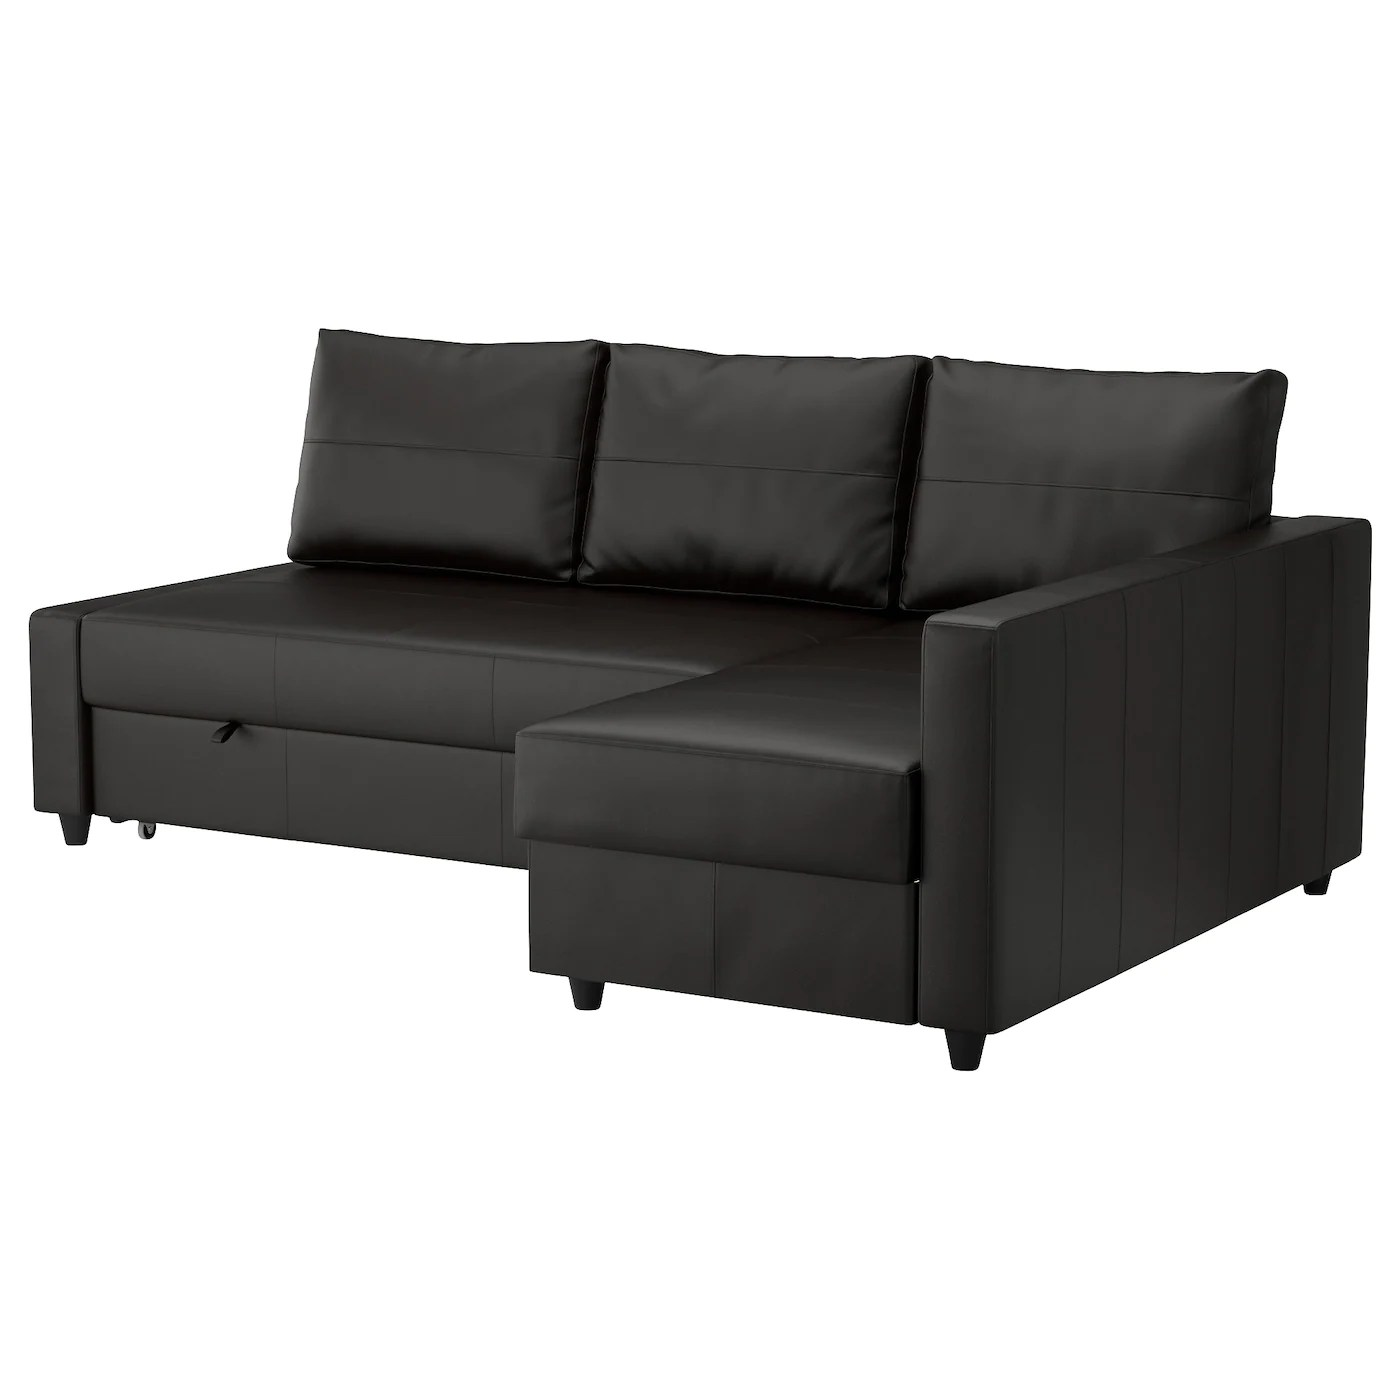 Bettsofa Ikea Friheten Friheten Corner Sofa Bed With Storage Bomstad Black